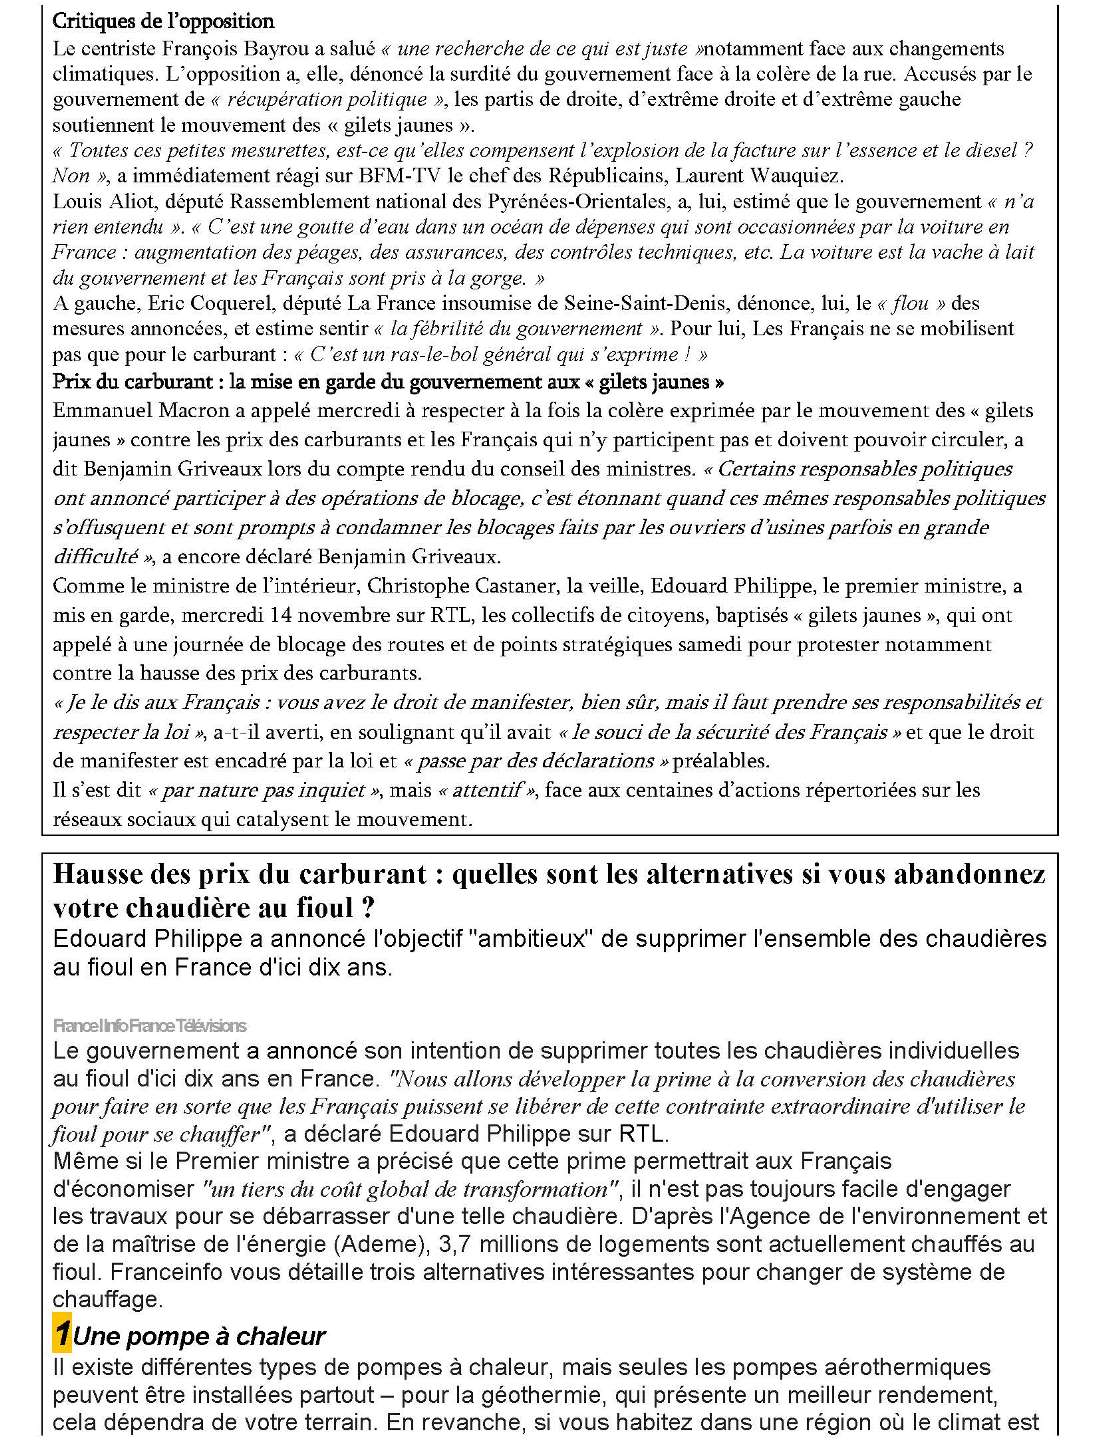 article_Page_05